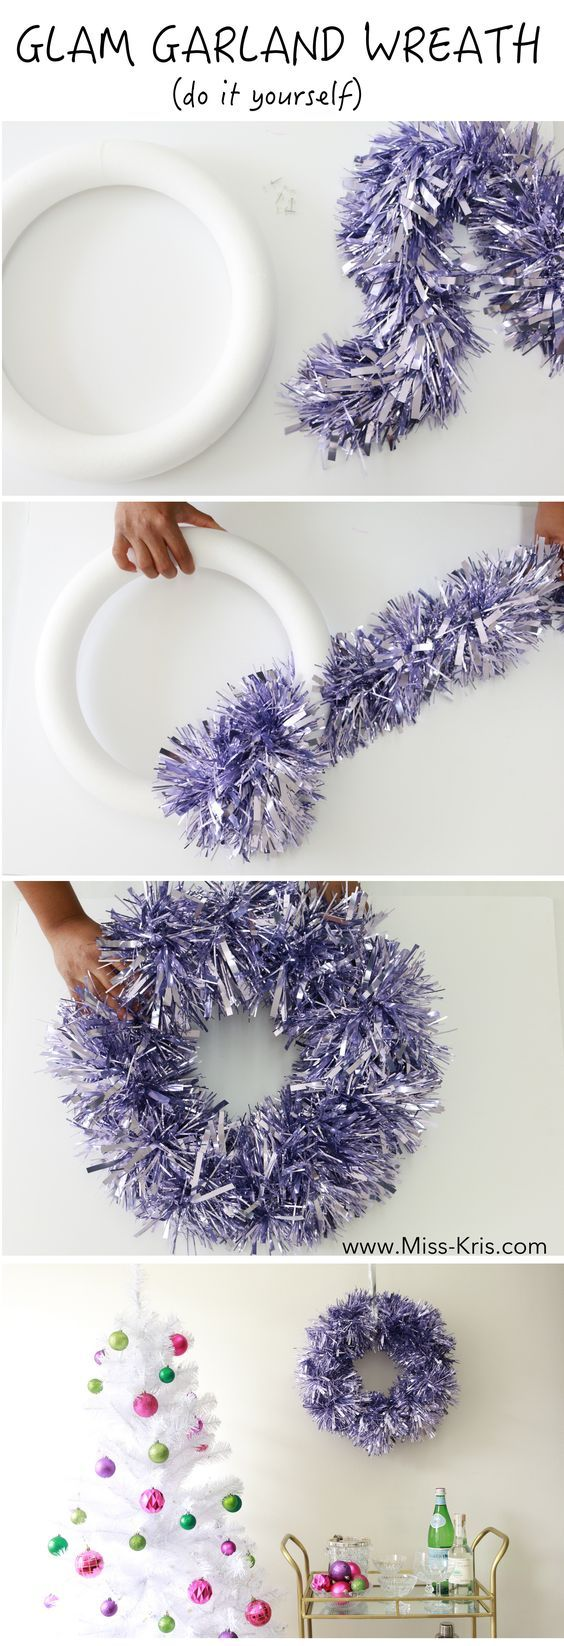 DIY Christmas Wreath by Miss Kris. Full Post here -> http://miss-kris.com/2015/12/glamgarlandwreath/: